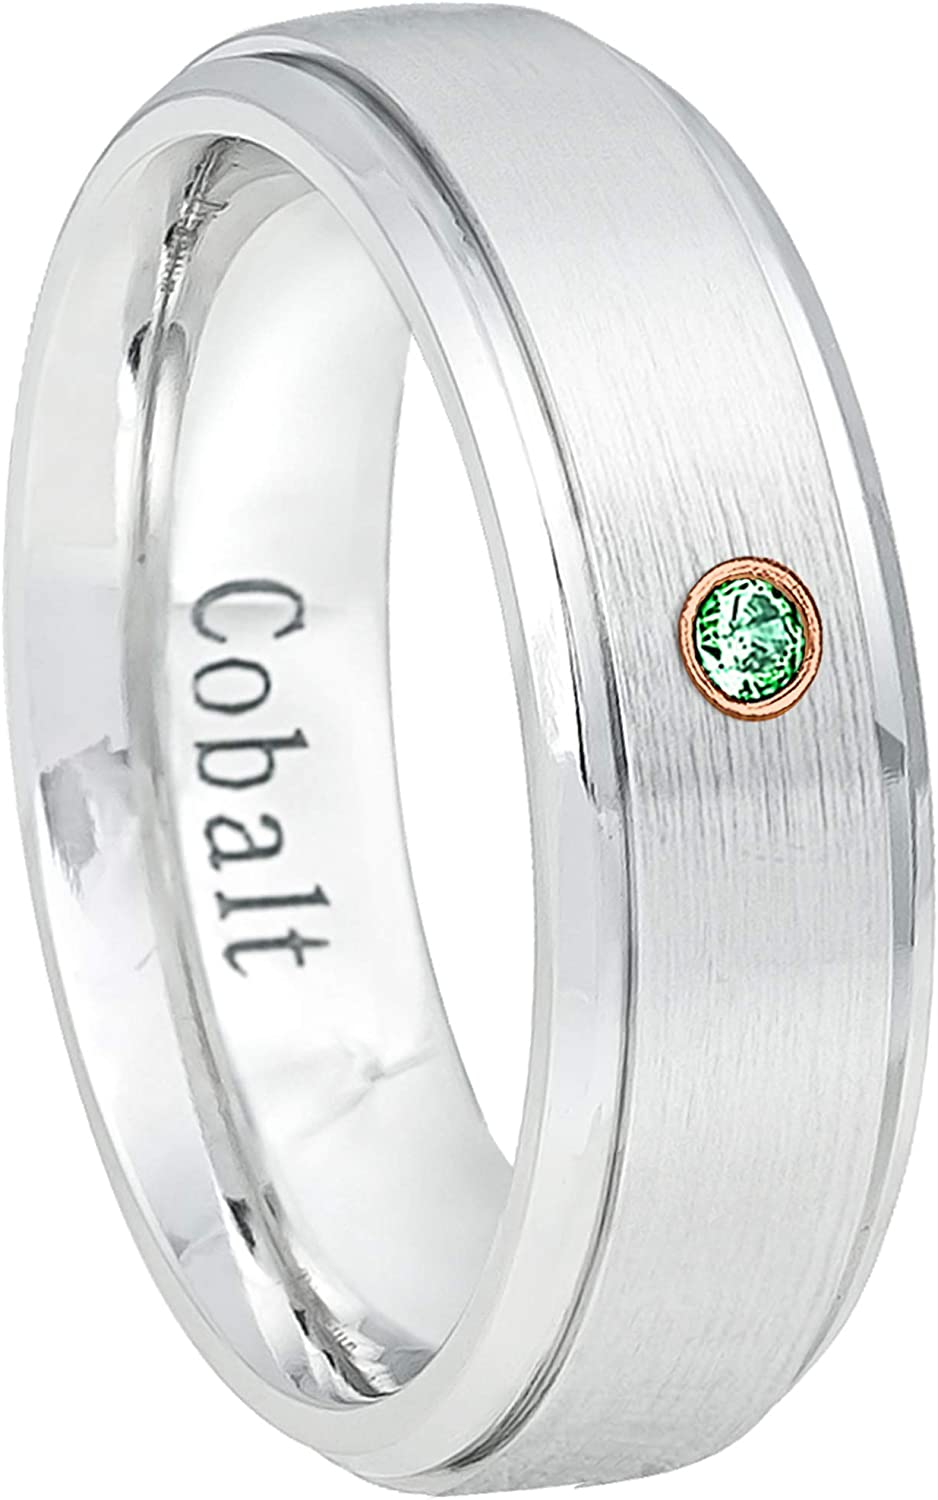 Jewelry Avalanche 7MM Comfort Fit Polished Dome Cobalt Chrome Wedding Band 7.5 0.07ct Emerald Cobalt Ring May Birthstone Ring